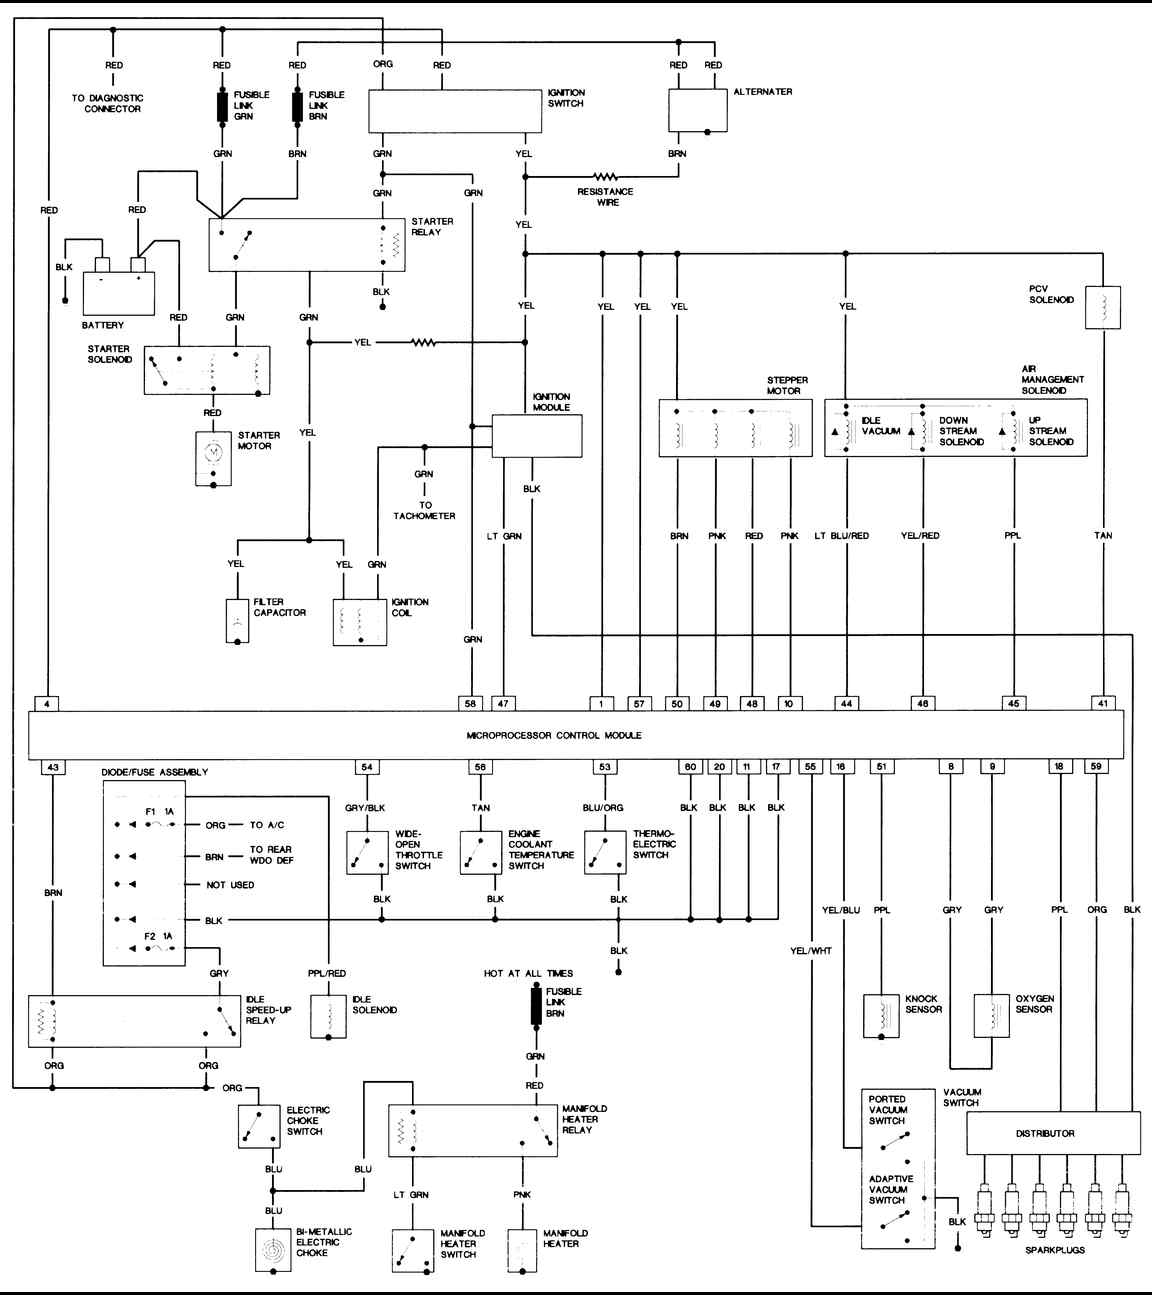 Jeep Engineering Diagram - DATA Wiring Diagrams •